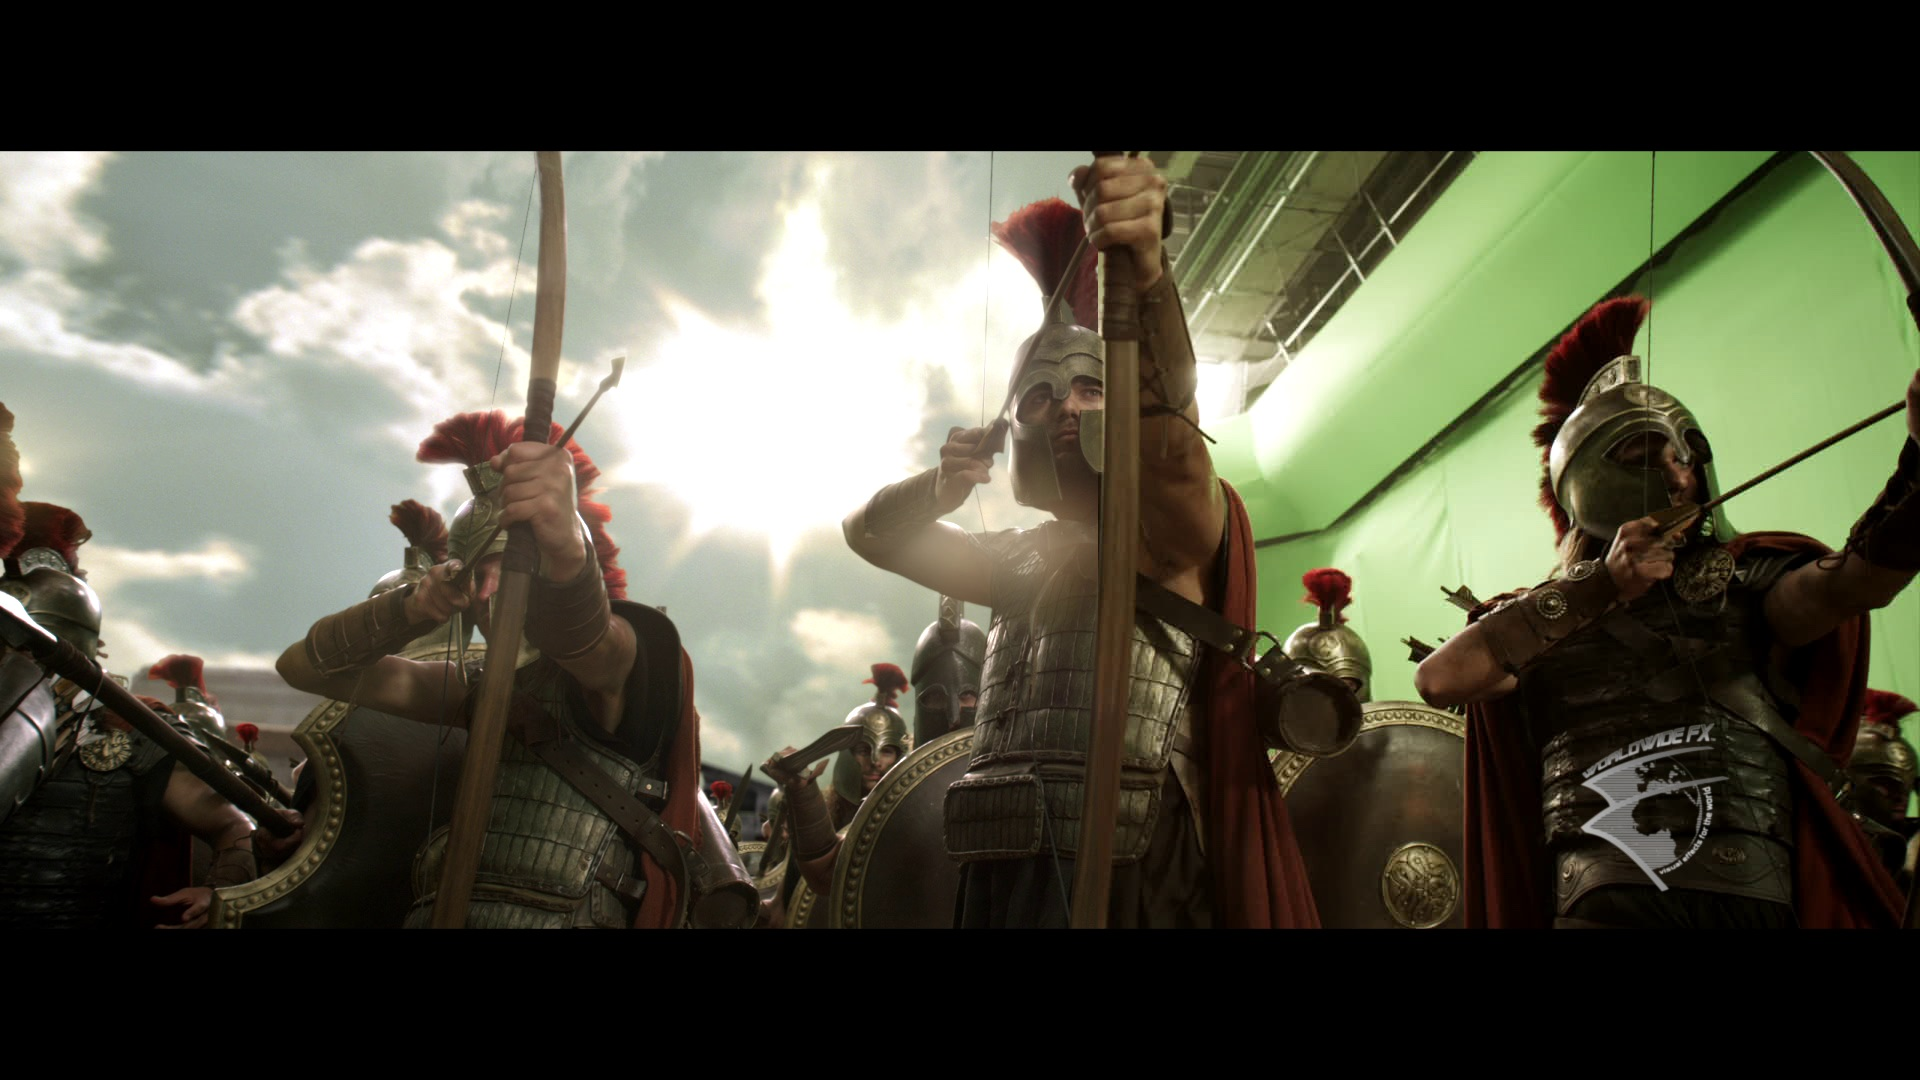 Want To Become A VFX Artist?